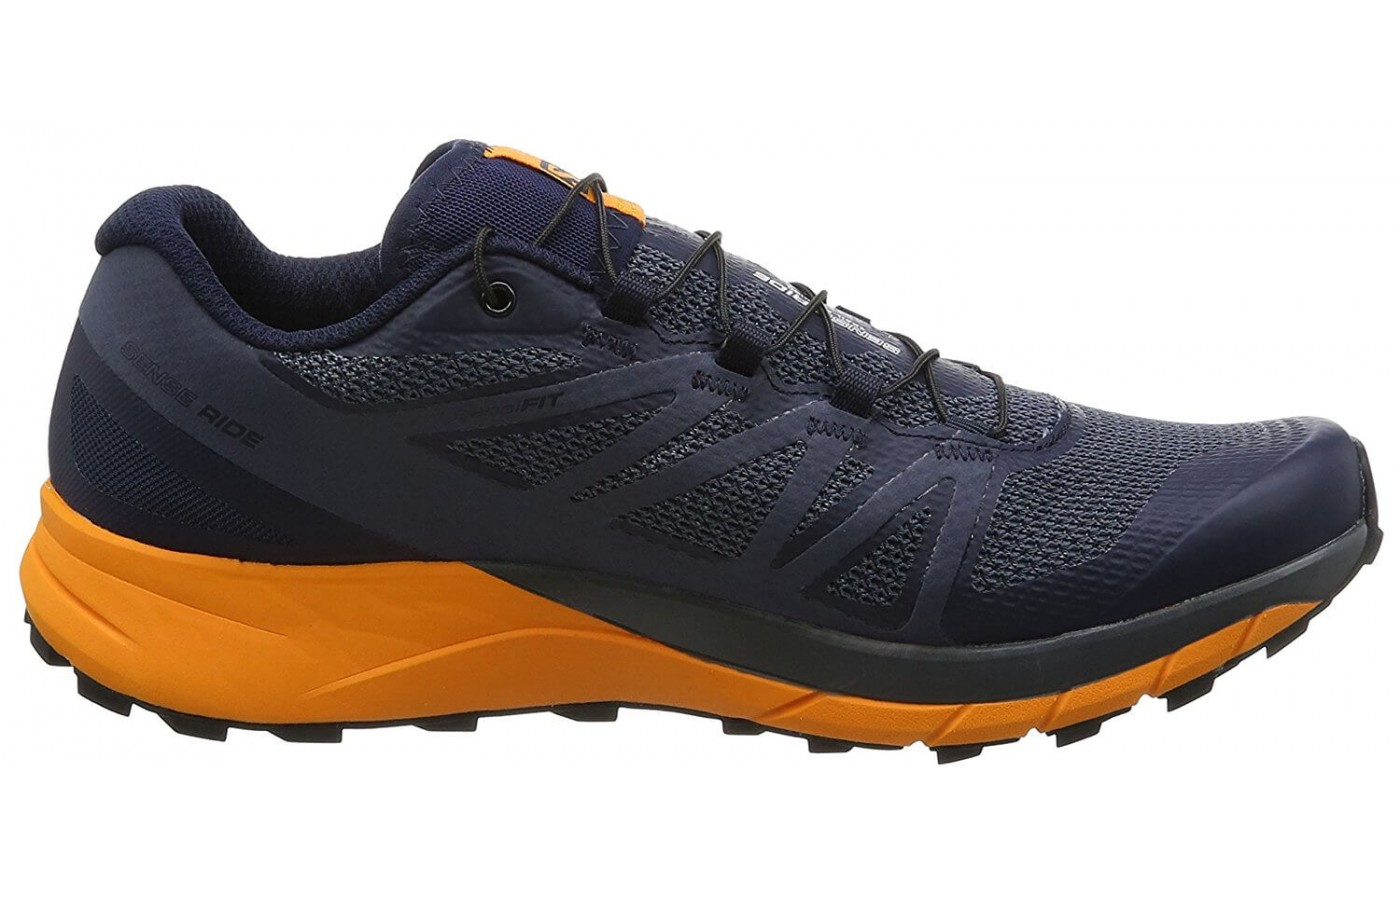 cbbbc079de71 Salomon Sense Ride Reviewed - To Buy or Not in Apr 2019